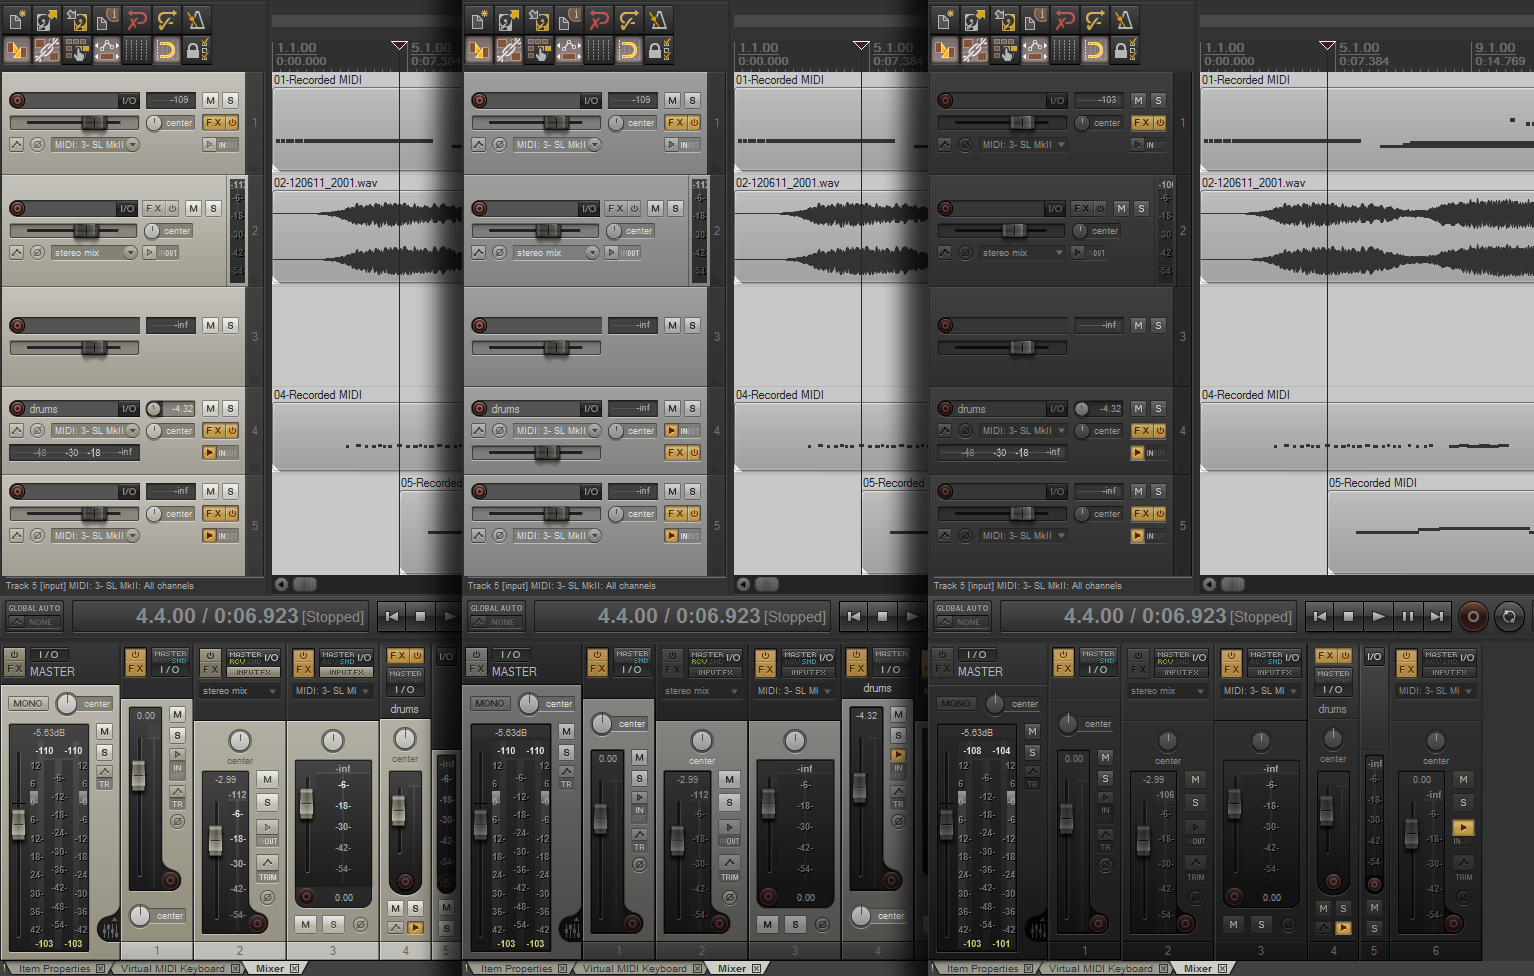 Cool theme 'Default Analog' by Lerian | The REAPER Blog